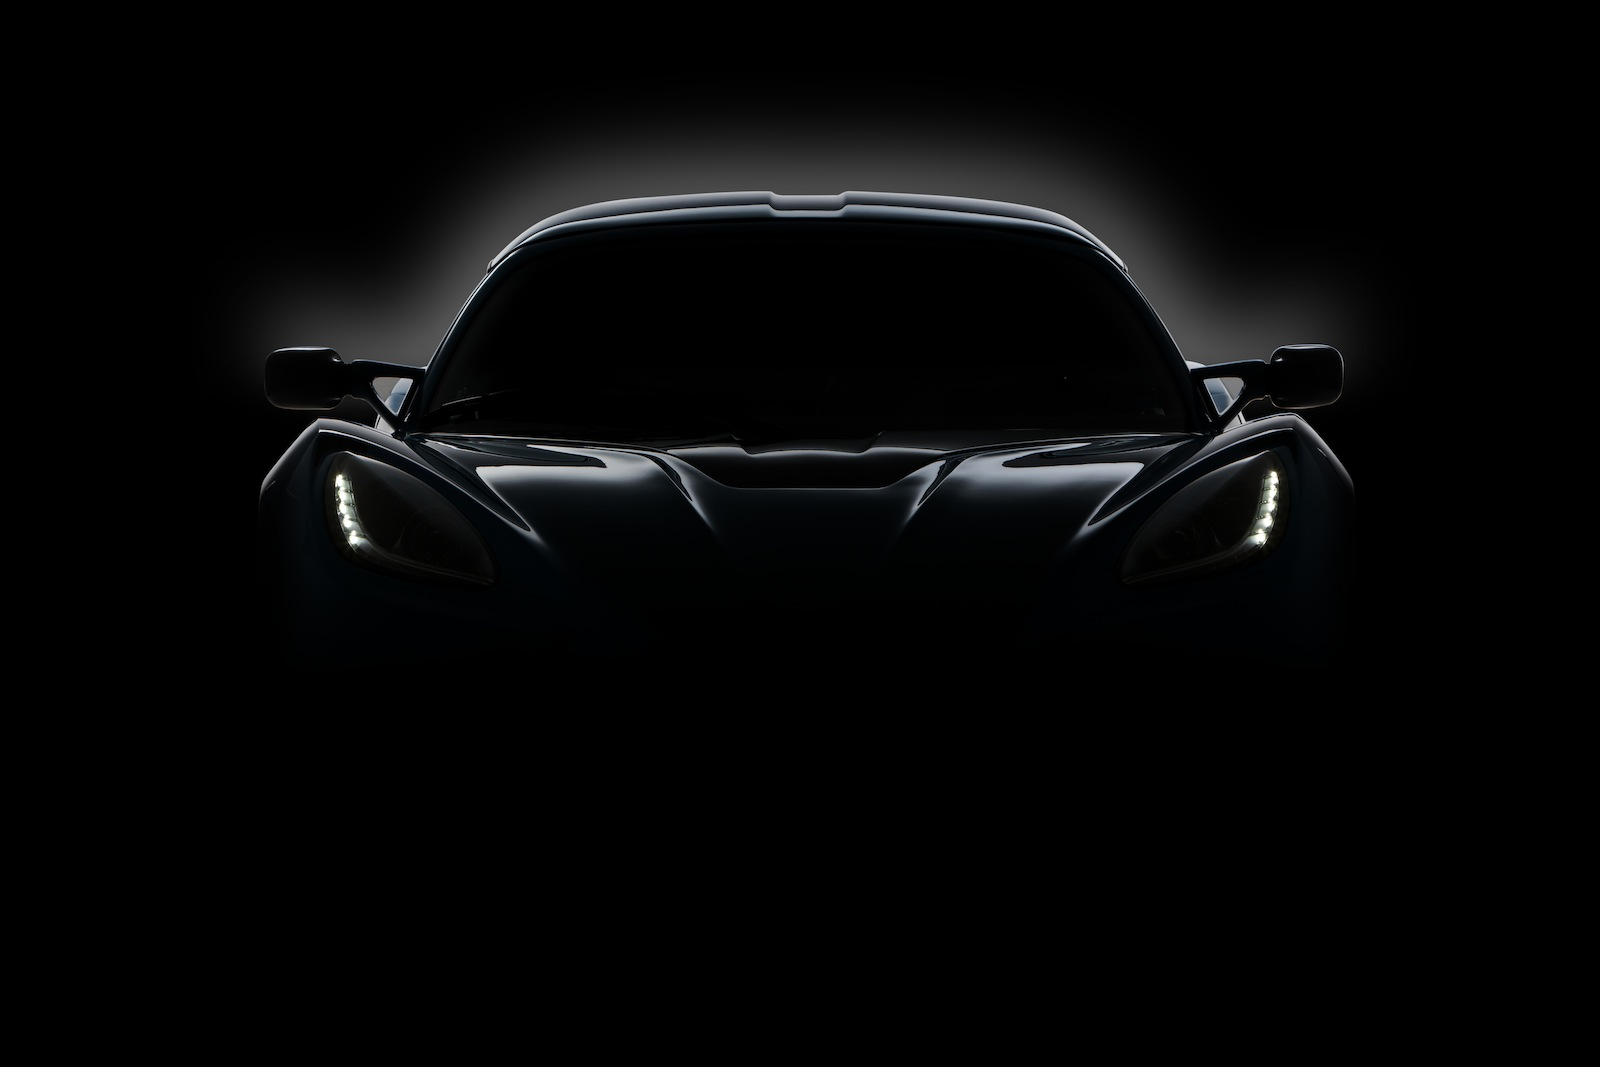 Detroit Electric To Debut All Electric Sports Car In April